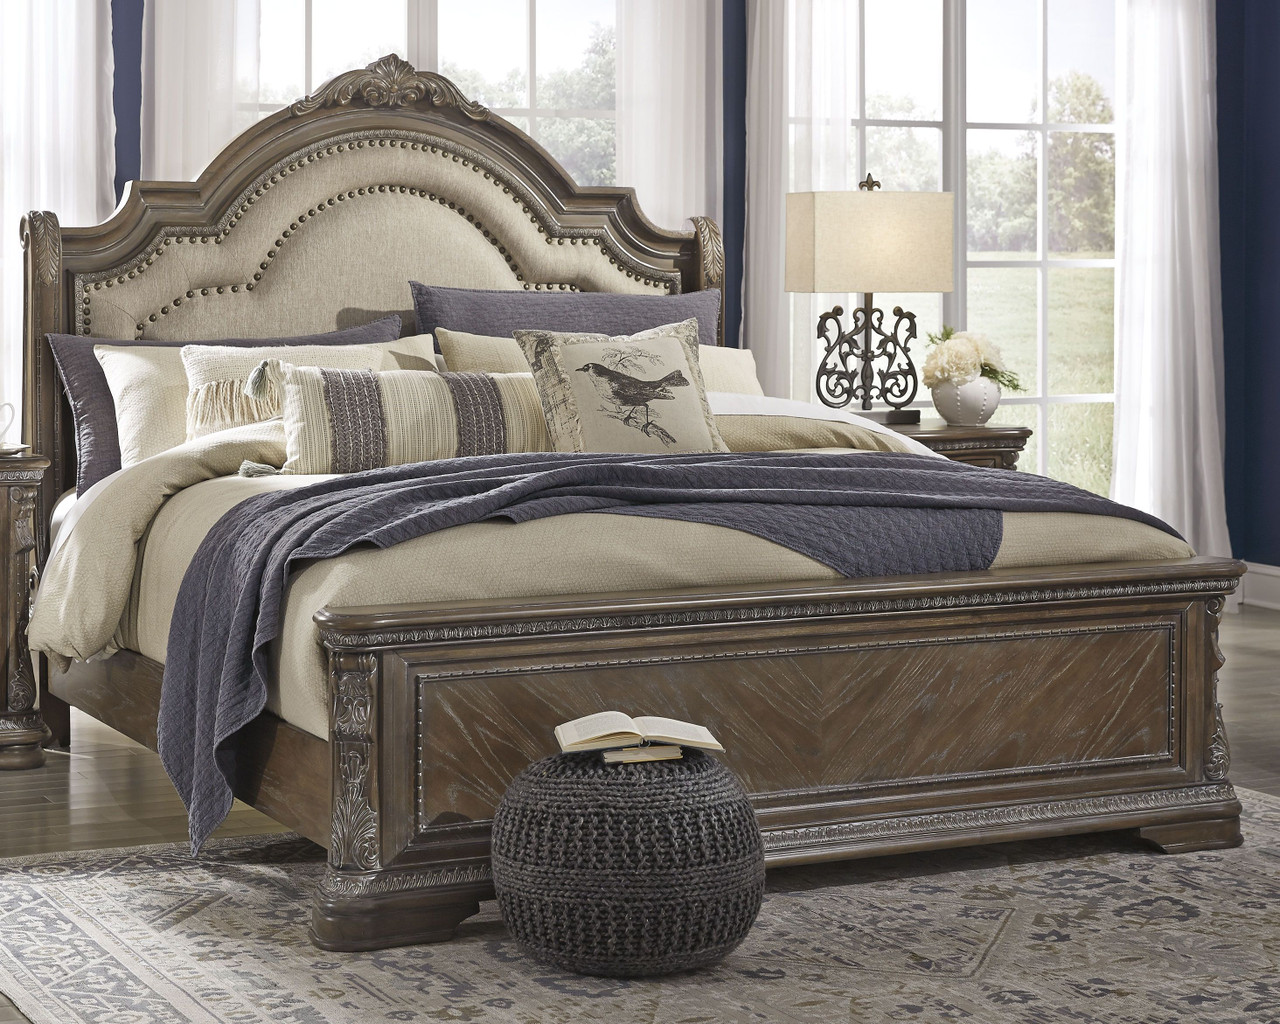 The Charmond Brown Queen Upholstered Sleigh Bed Available At Select Furnishings Serving Brenham Tx And Surroundaing Areas